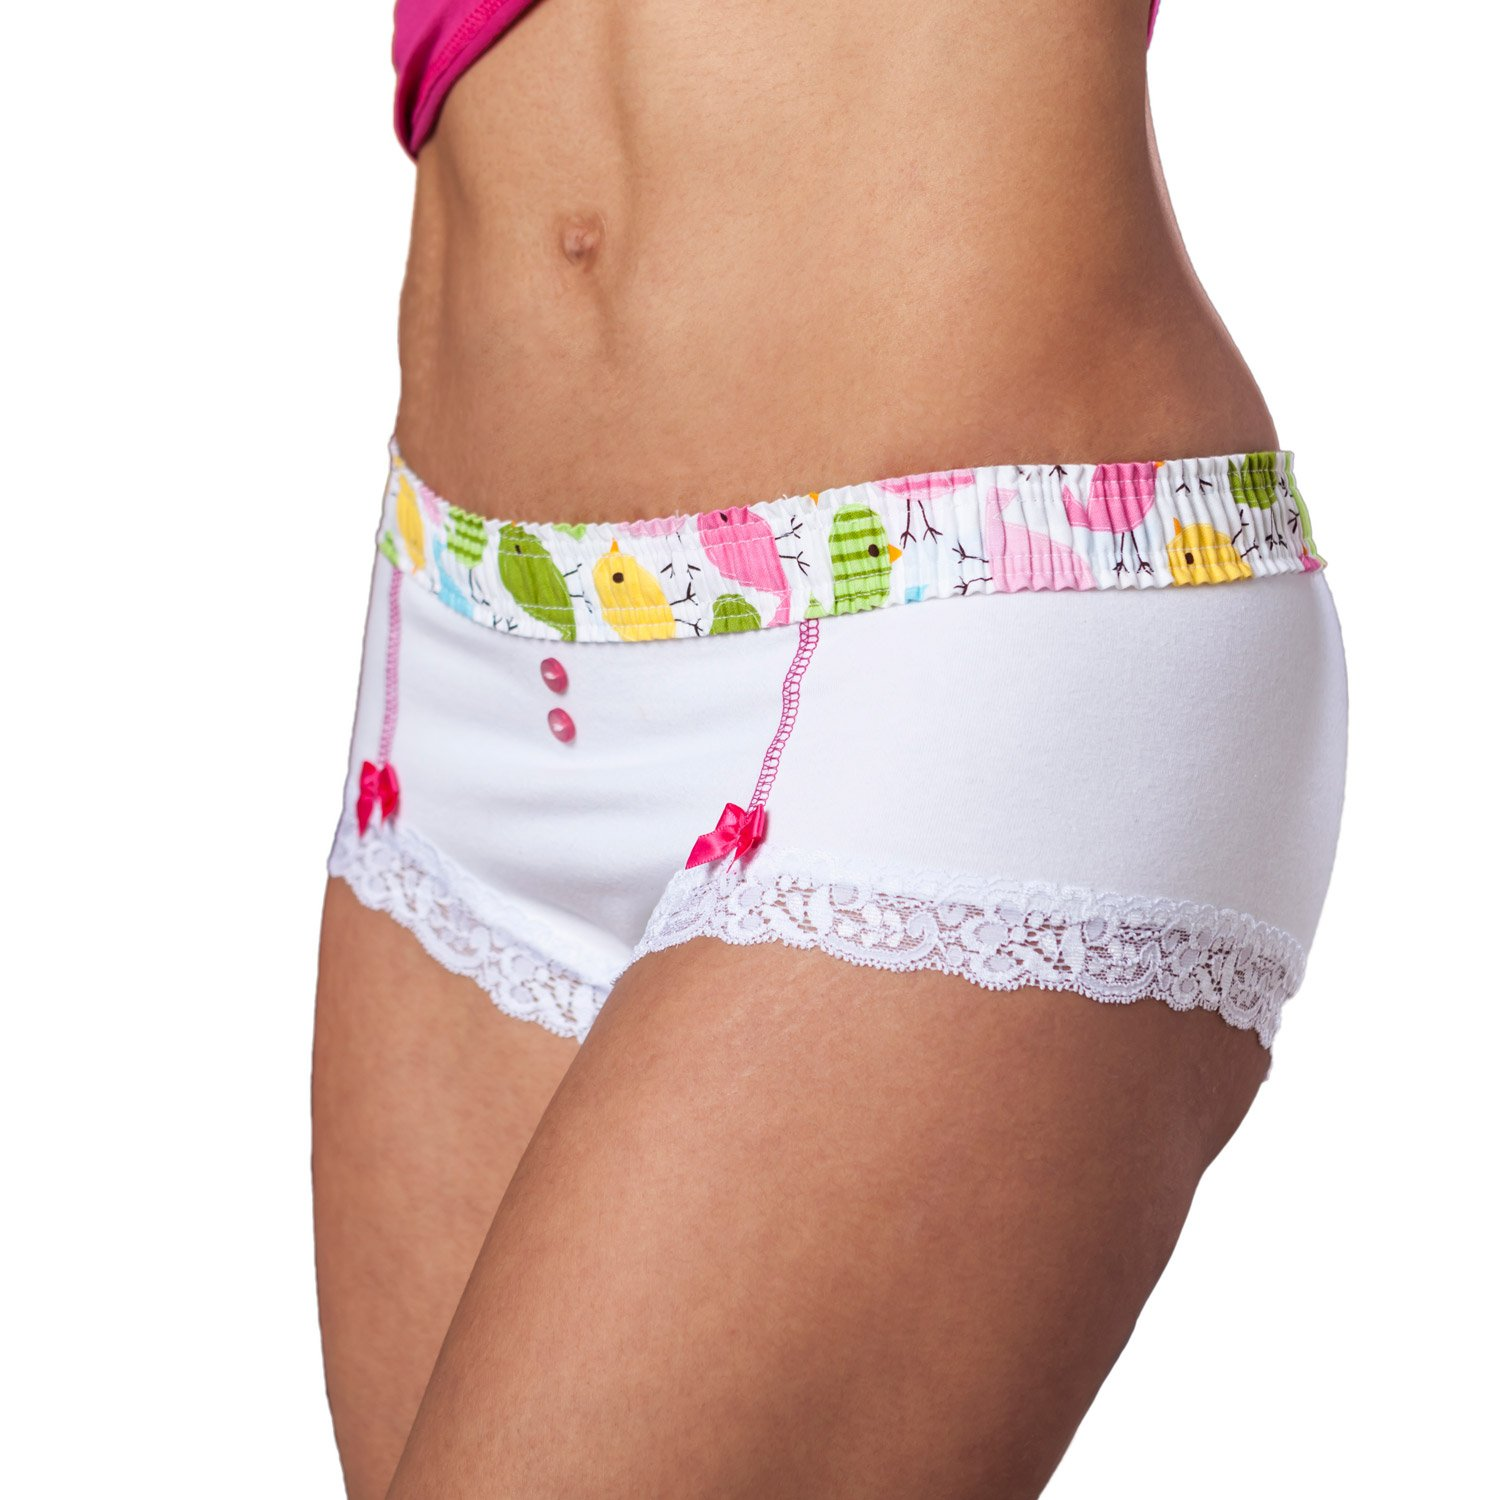 4c1cec412e8 Foxers Cheeky Women s Cotton Boyshort Underwear Cute Boxer Brief Panties